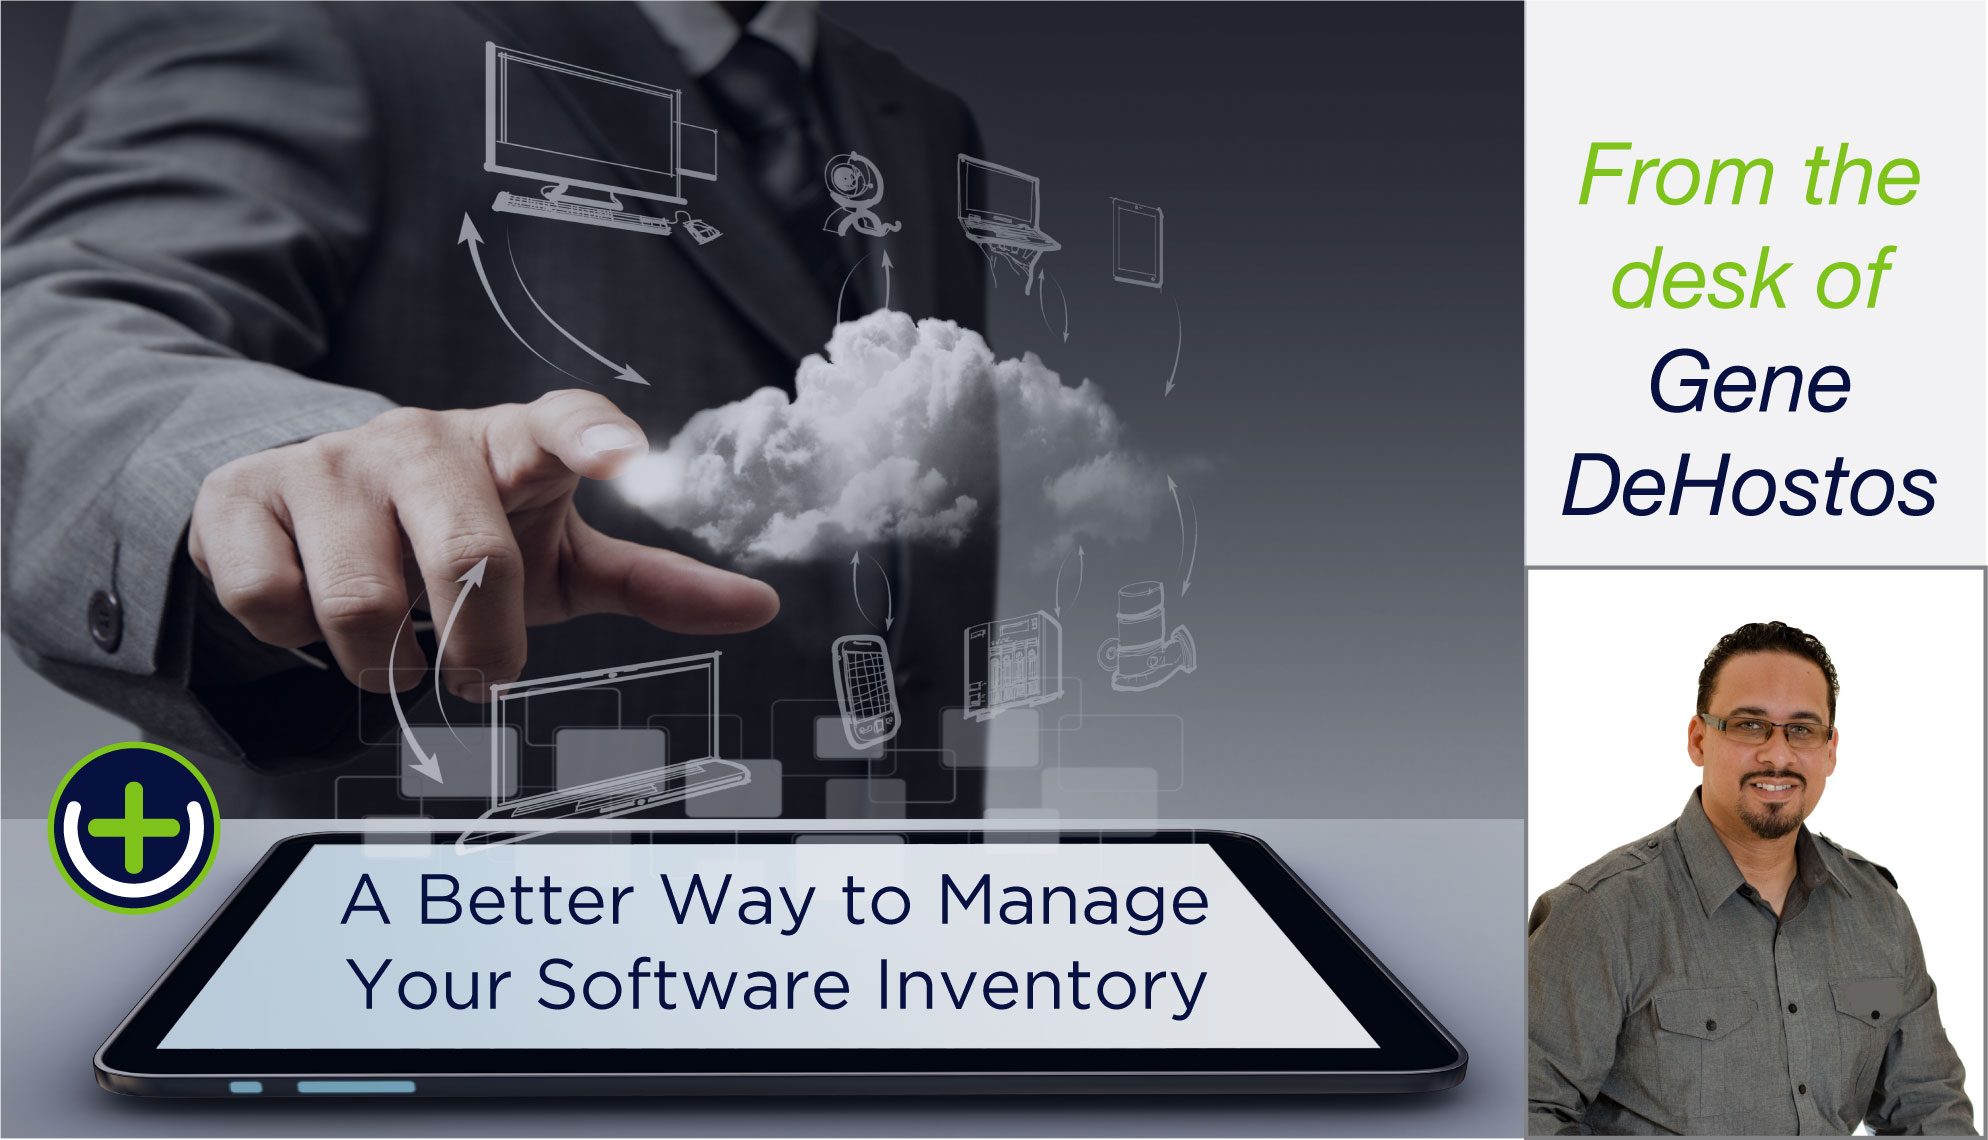 A Better Way to Manage Your Software Inventory